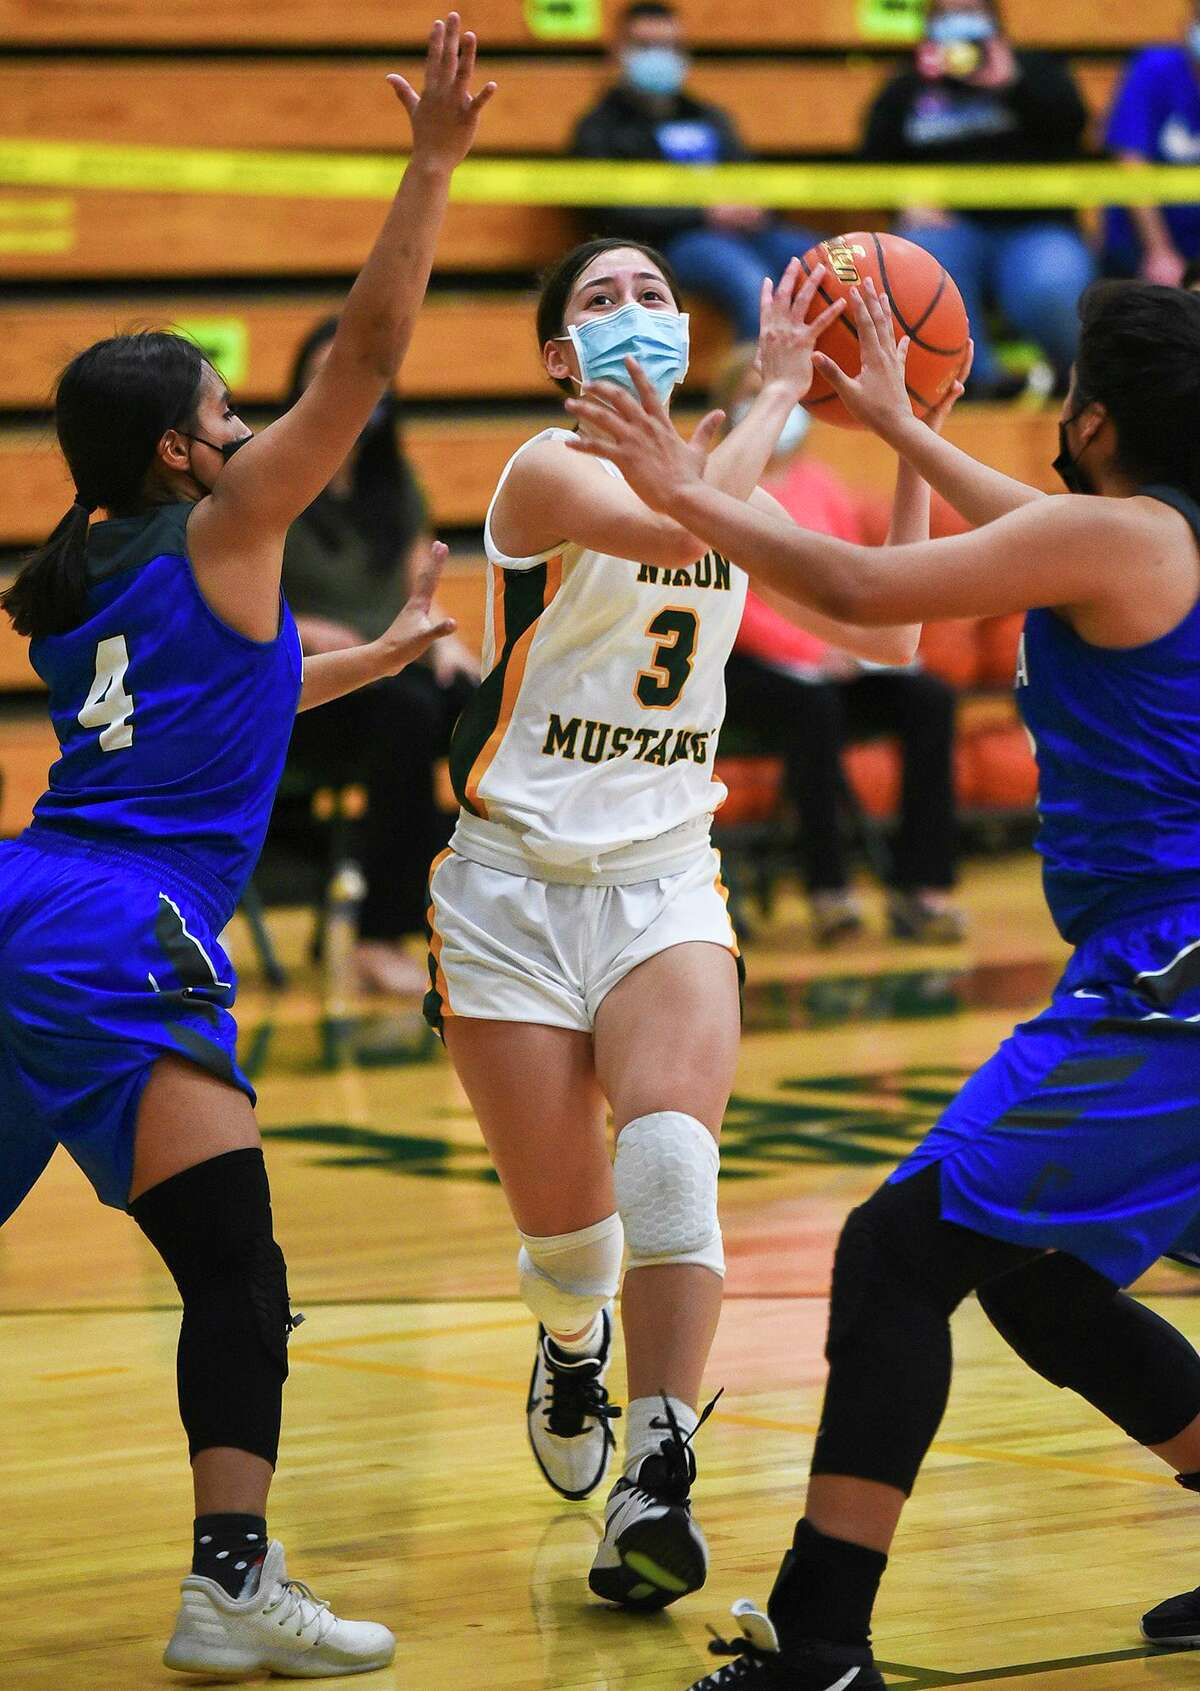 Dominique Lecea and the Nixon Lady Mustangs got their second win over Cigarroa on Saturday.